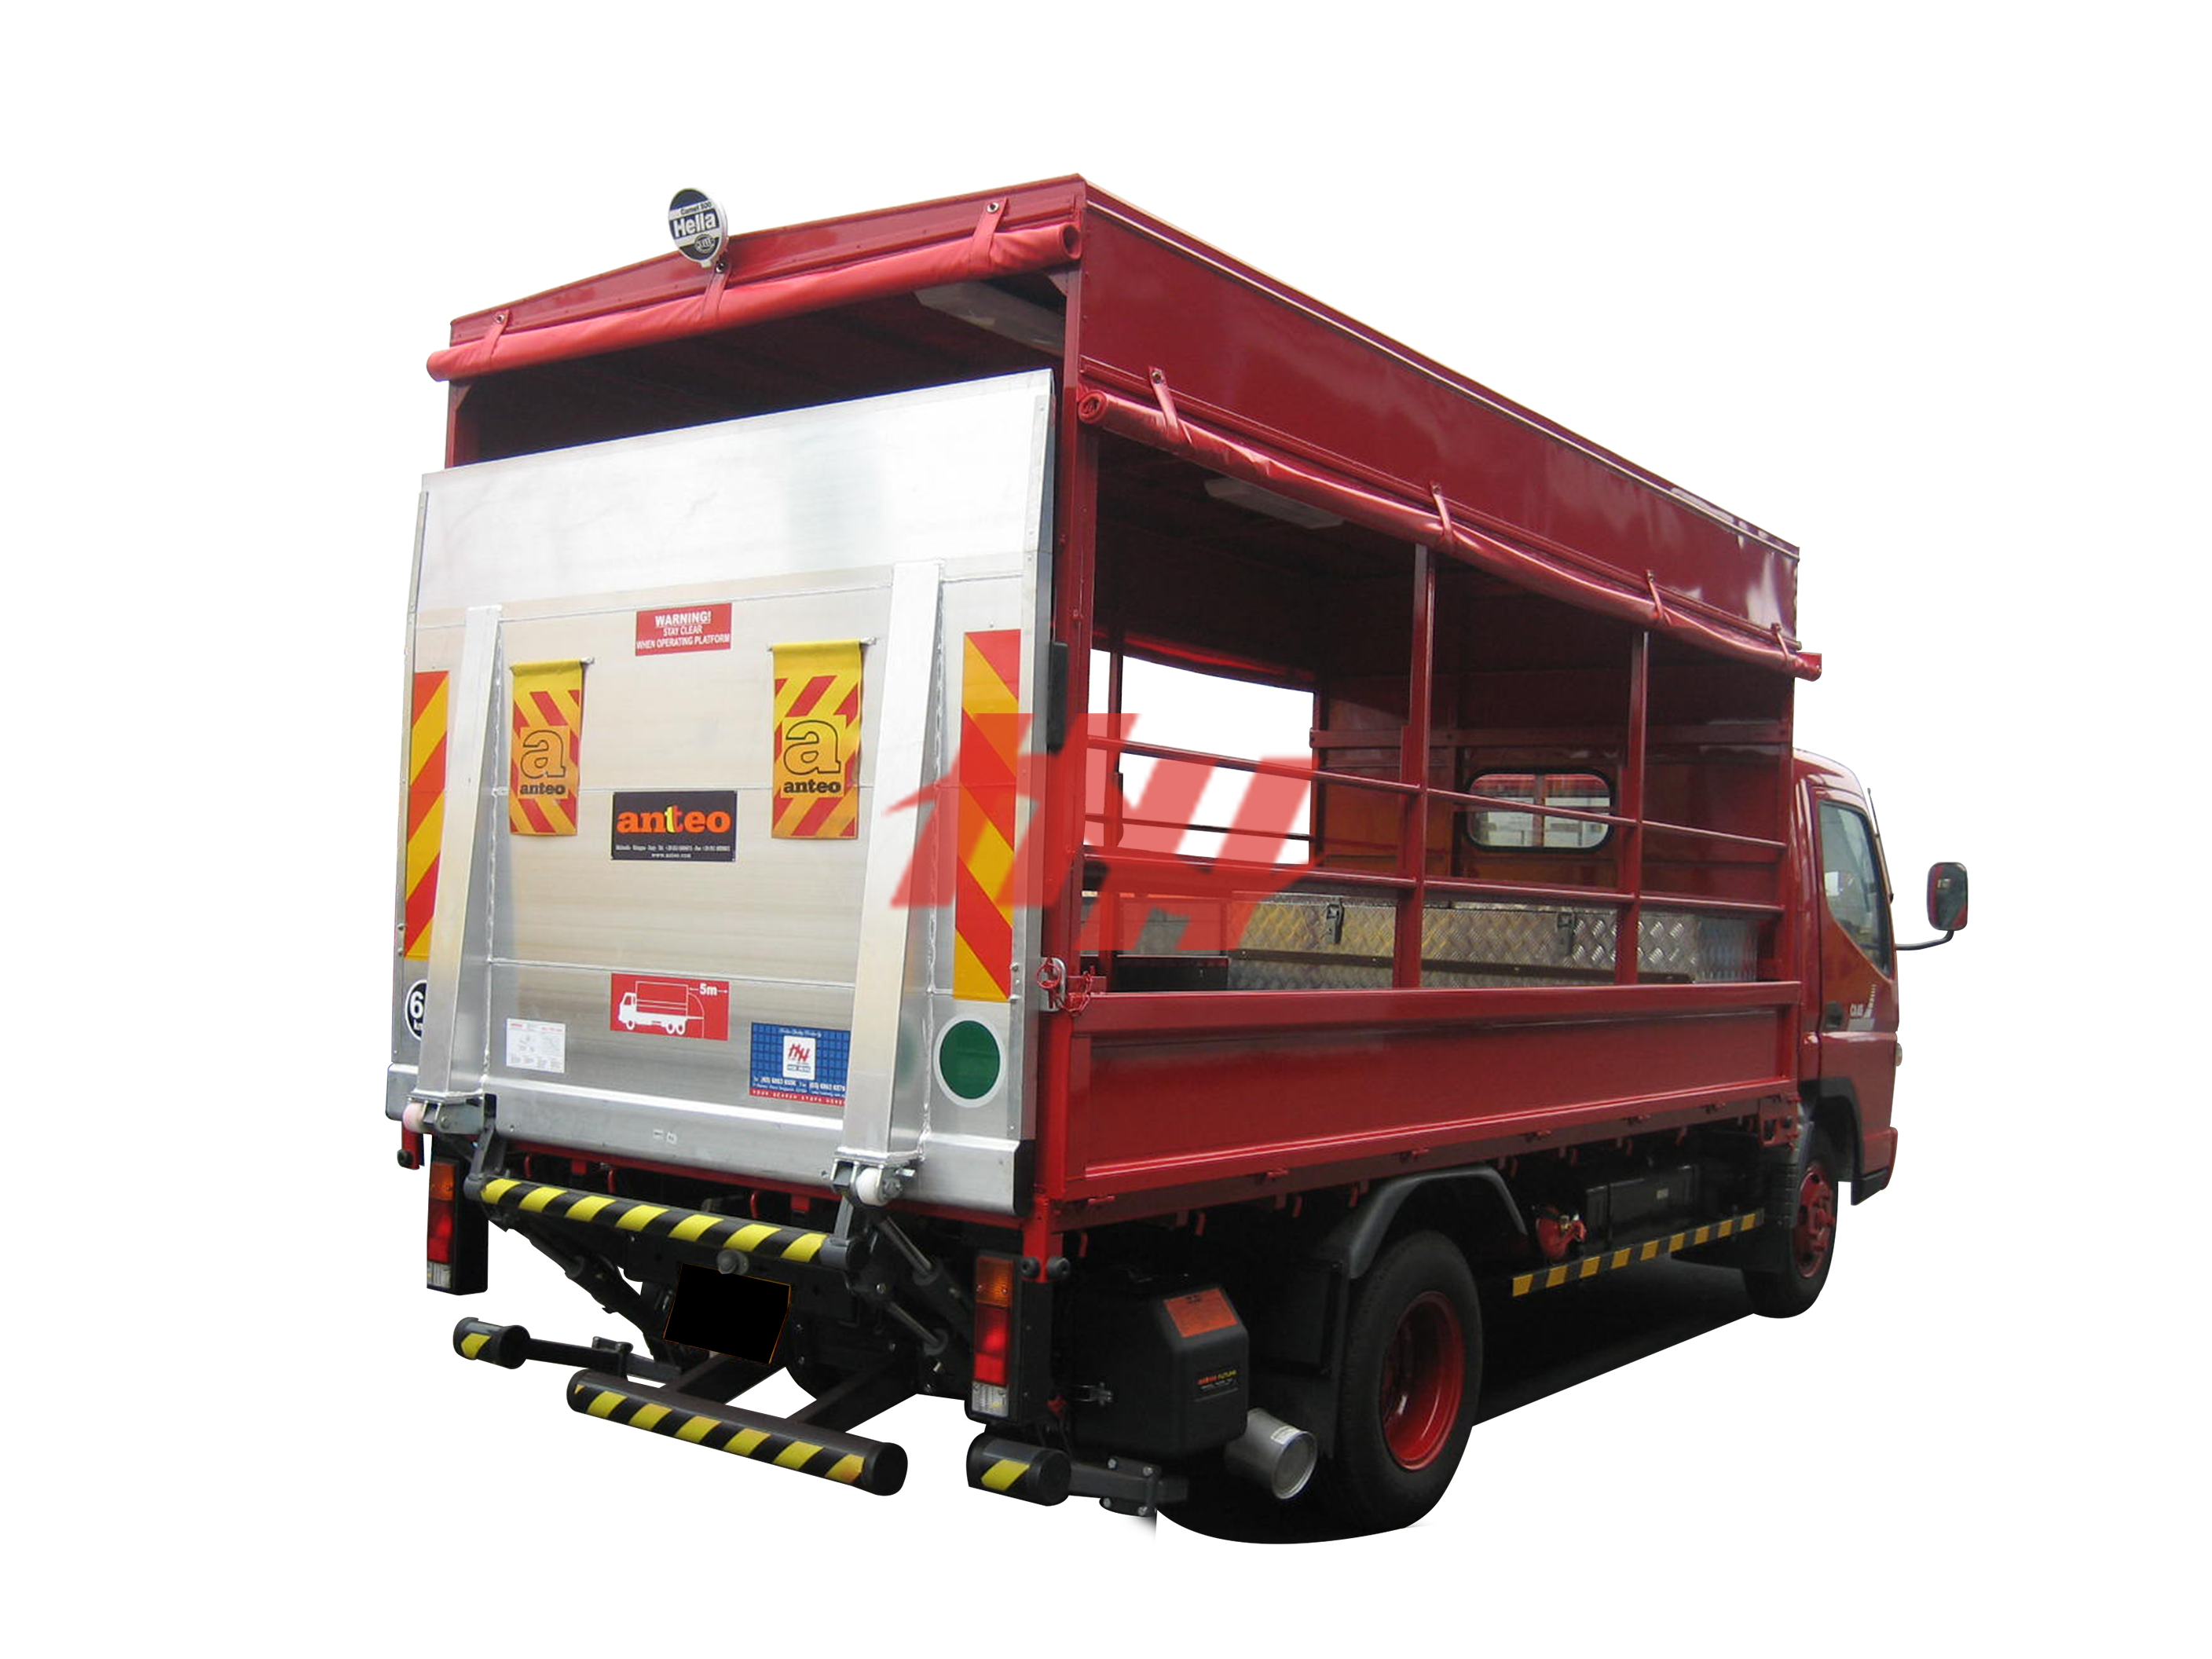 Steel body  high roof full length canopy with roll down canvas  side pannel  steel railing and tailgates edit